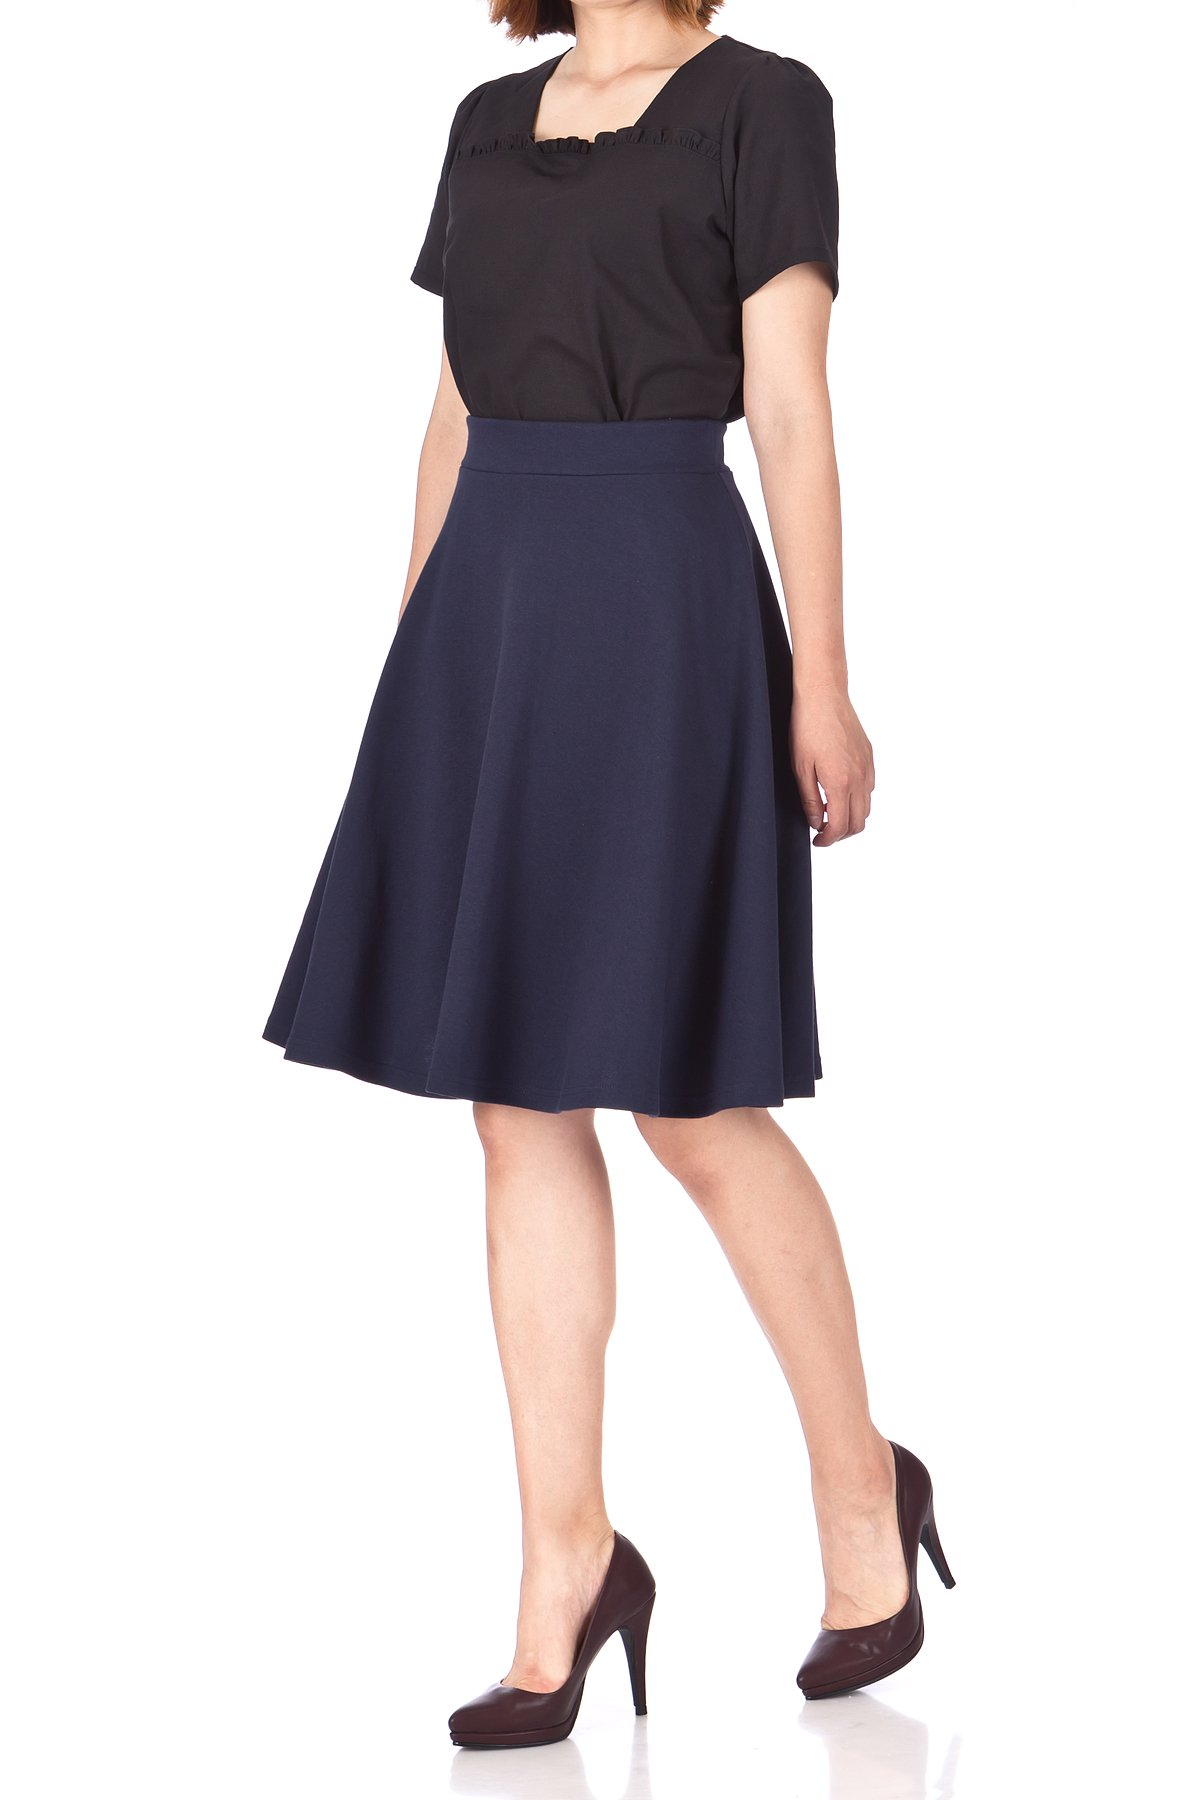 Comfy and Lovely Cotton Blend Versatile Casual Office High Waist A line Full Flared Swing Circle Skater Knee Length Skirt Navy 05 1